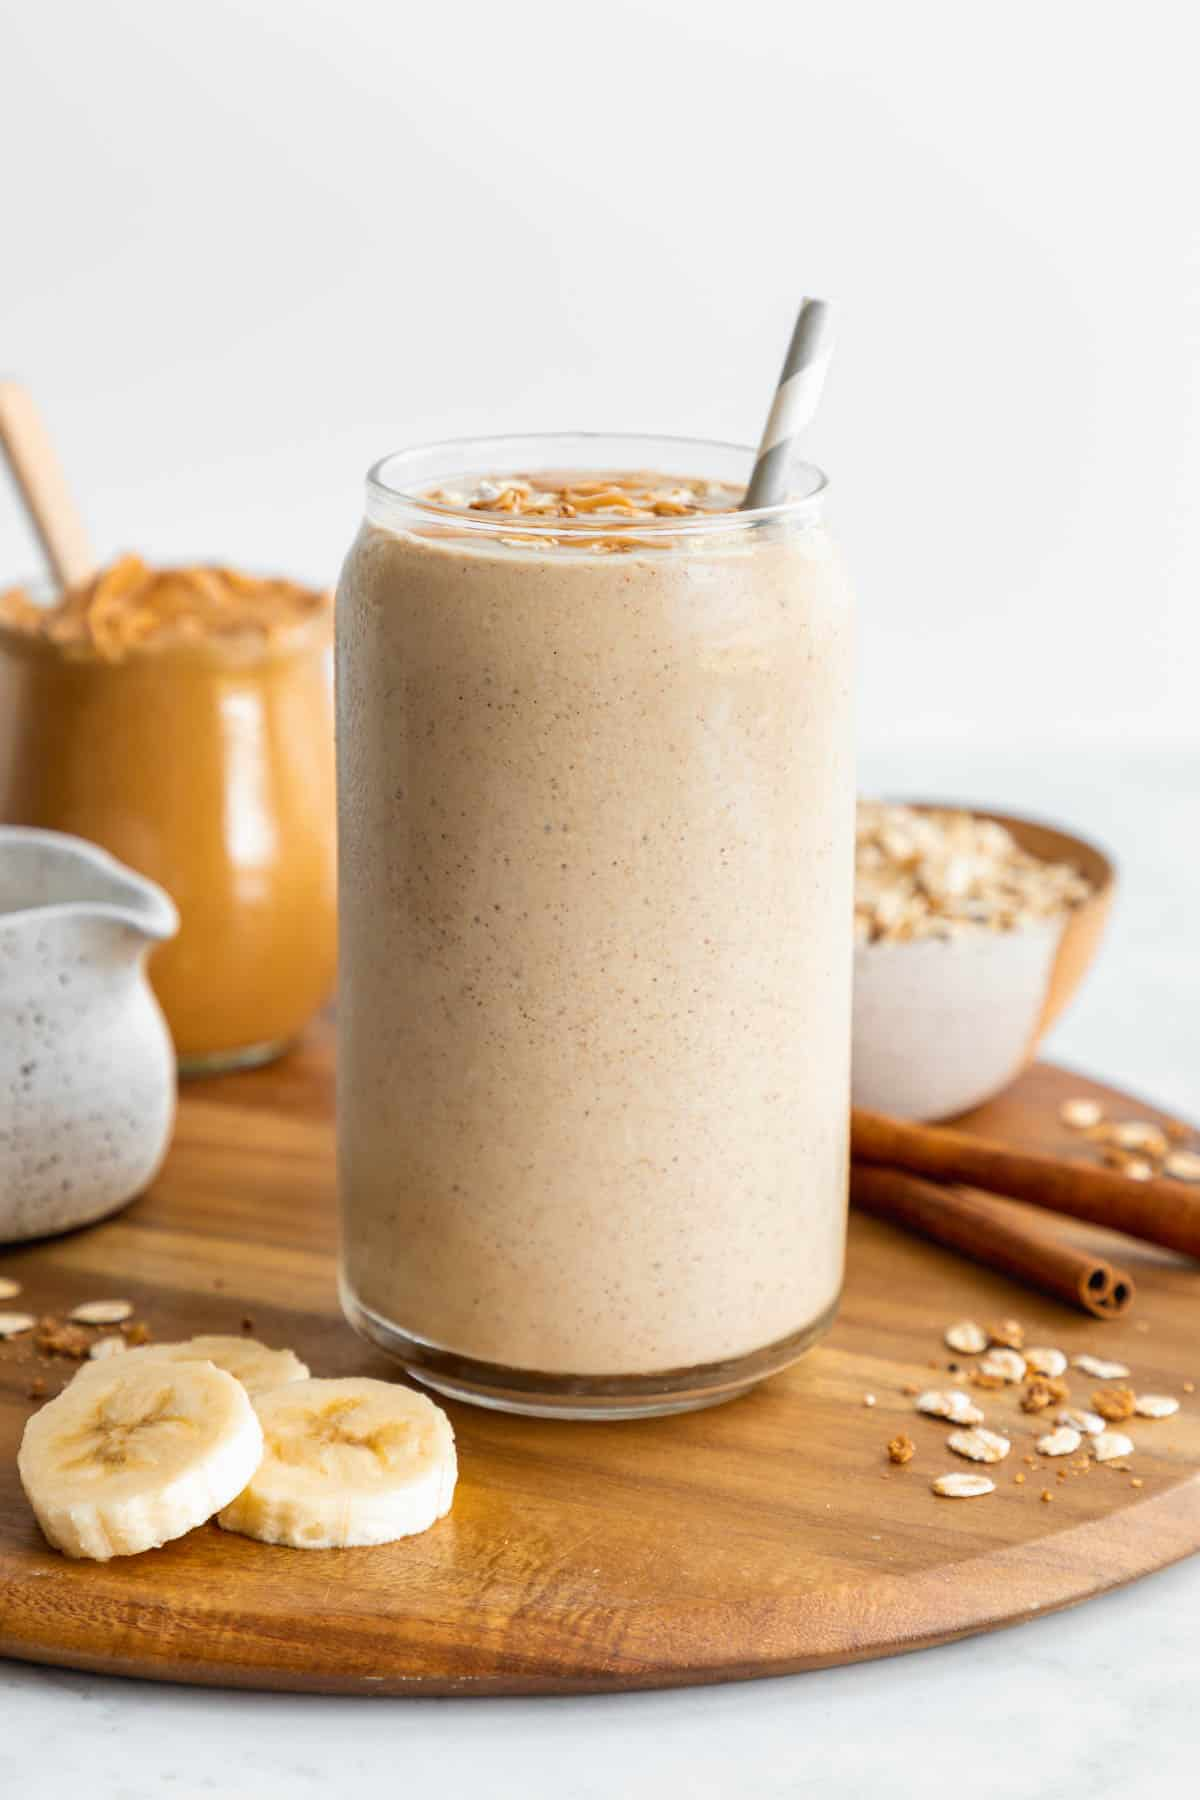 an oatmeal smoothie inside a glass surrounded by sliced banana, a jar of peanut butter, oats, and cinnamon sticks